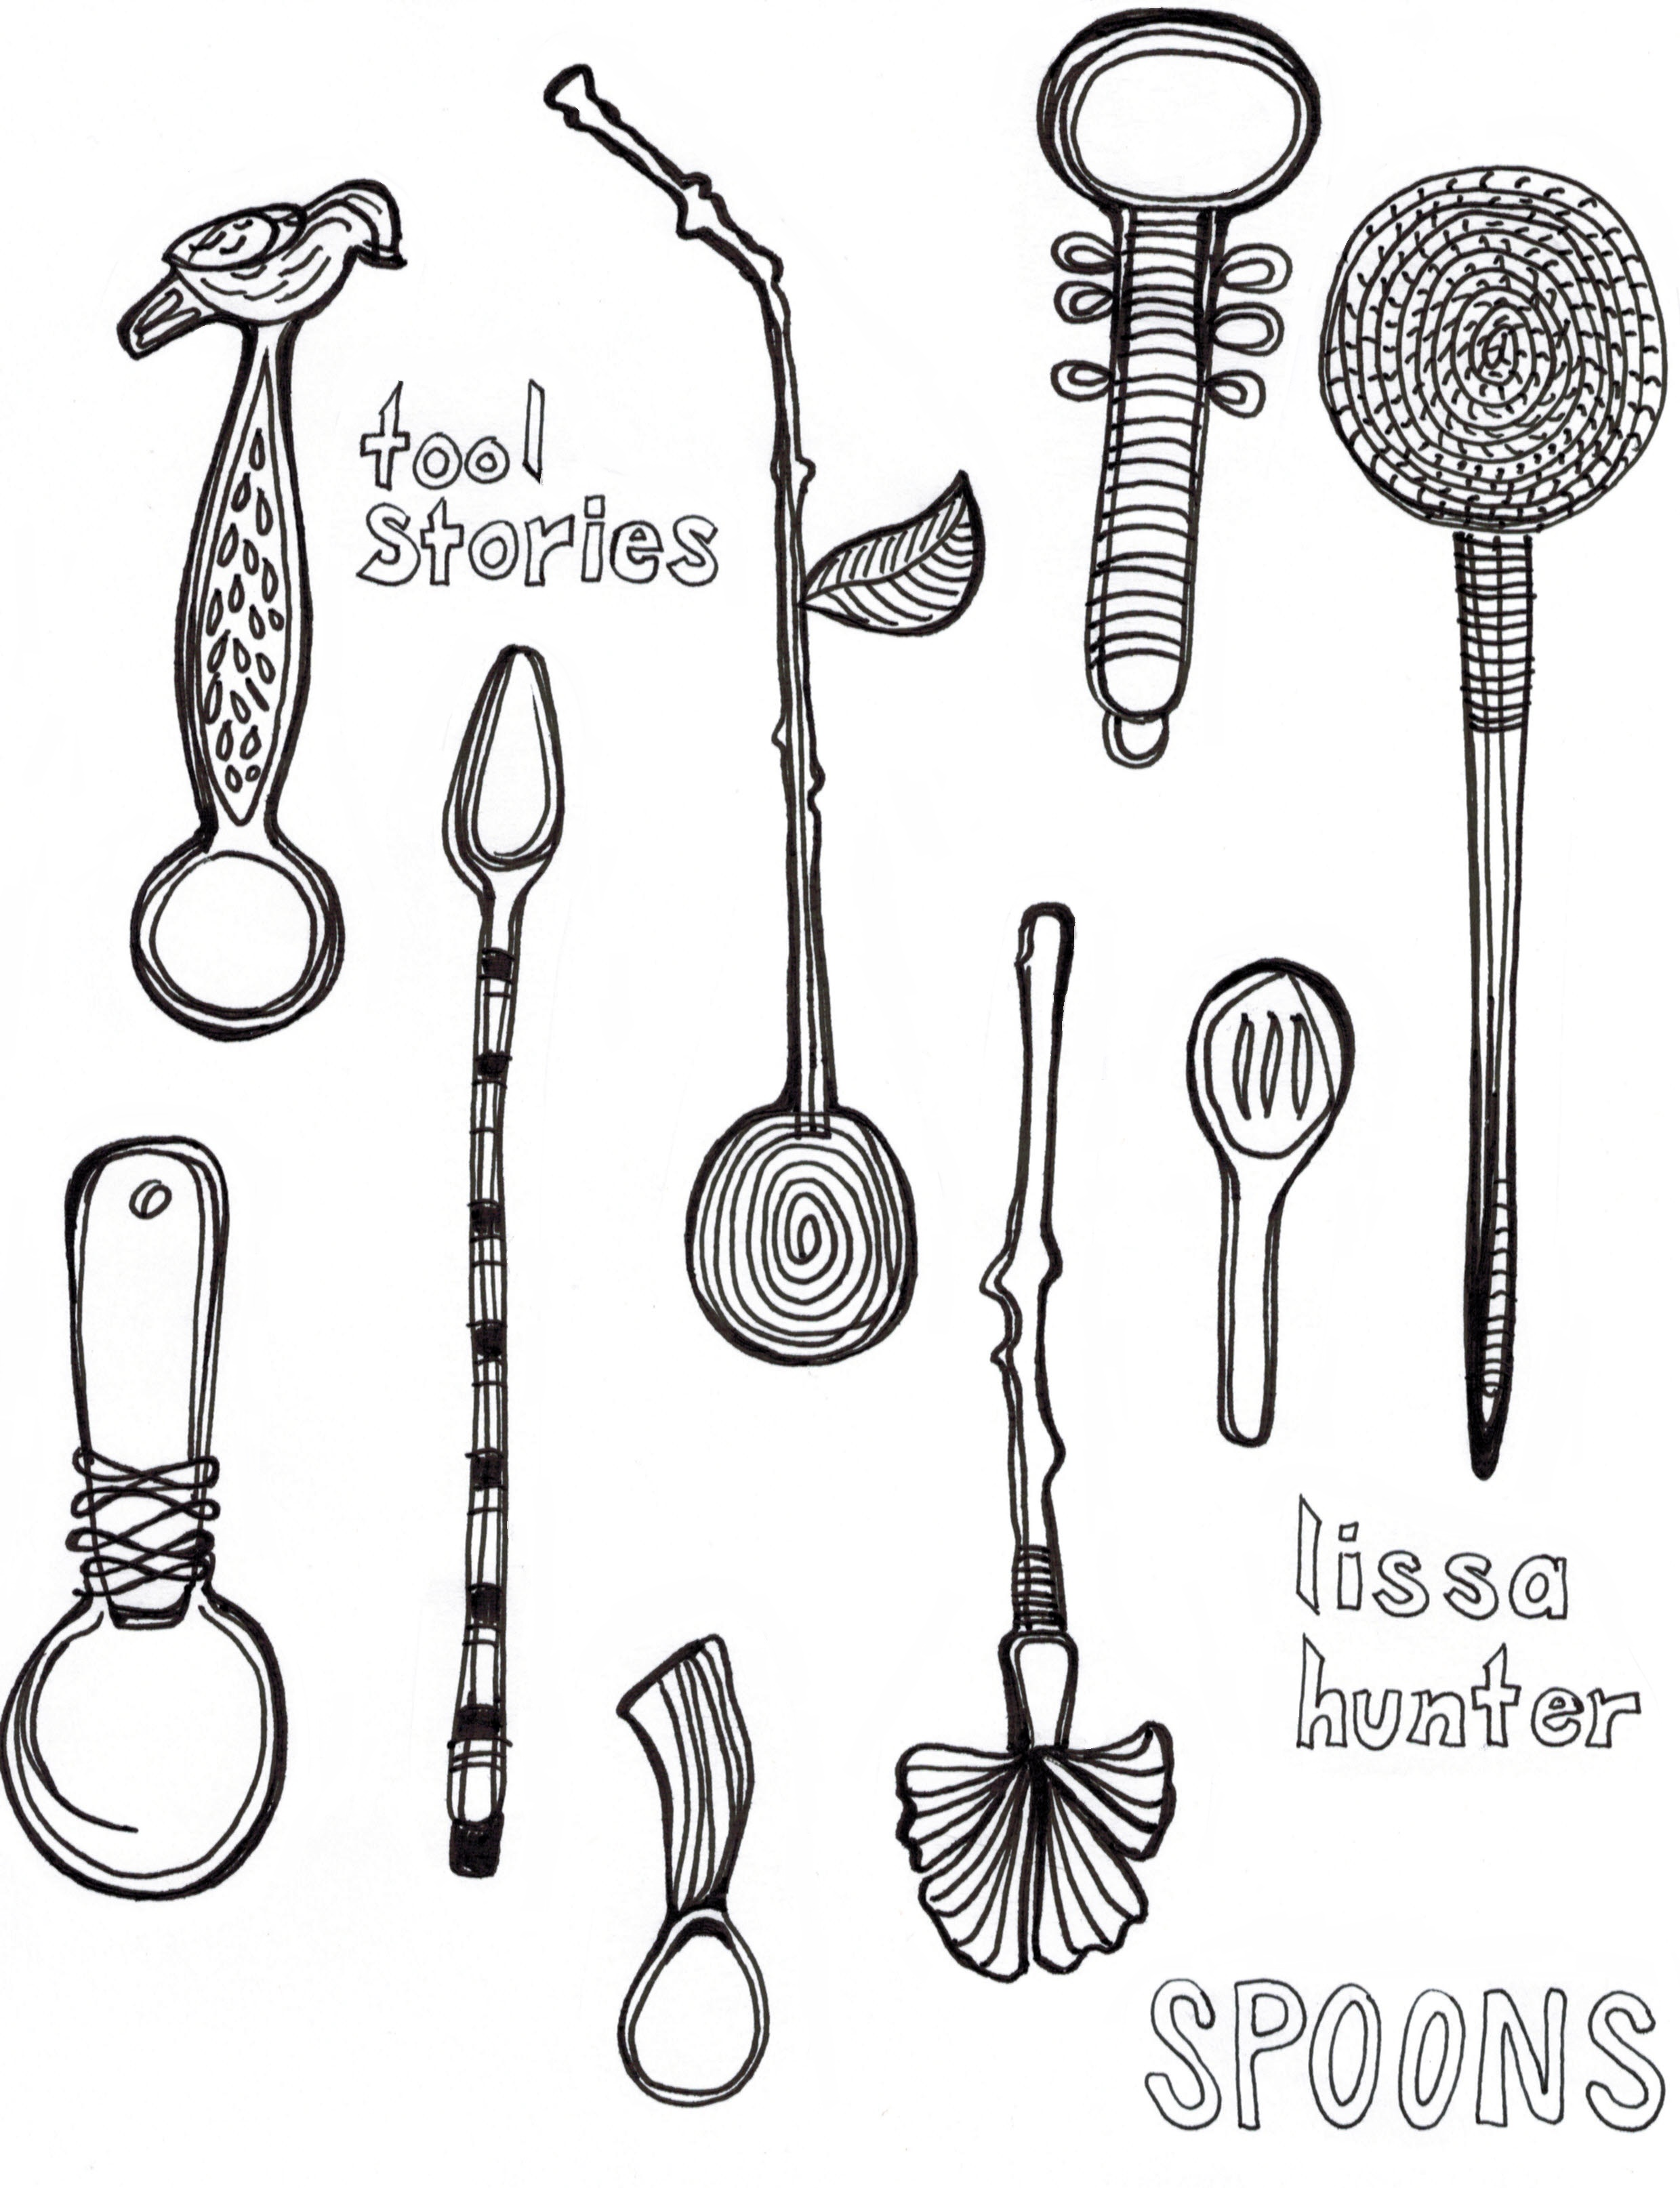 Lissa-Hunter-Spoons-Coloring-Page